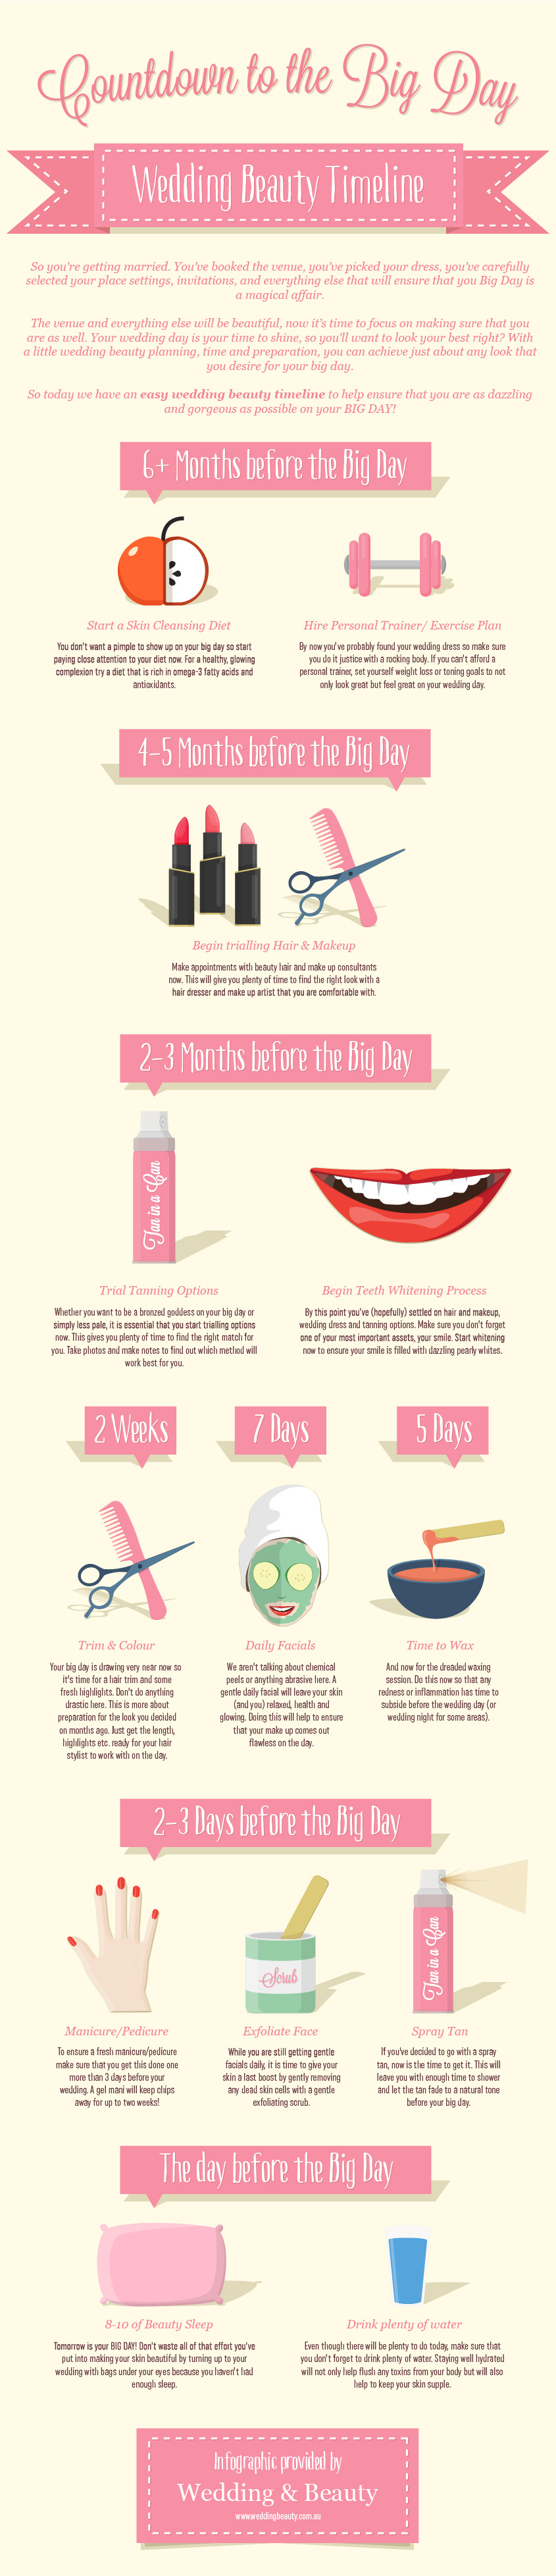 countdown to the big day! – wedding beauty timeline | visual.ly